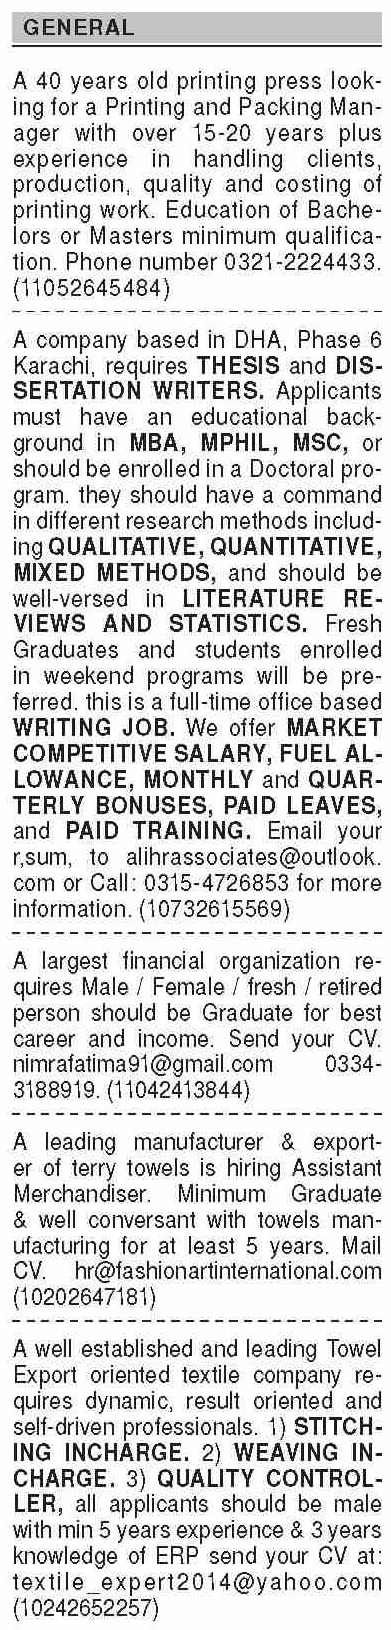 Packing Manager Writer Assistant Merchandiser CEO Editor Proof Reader Jobs in Karachi